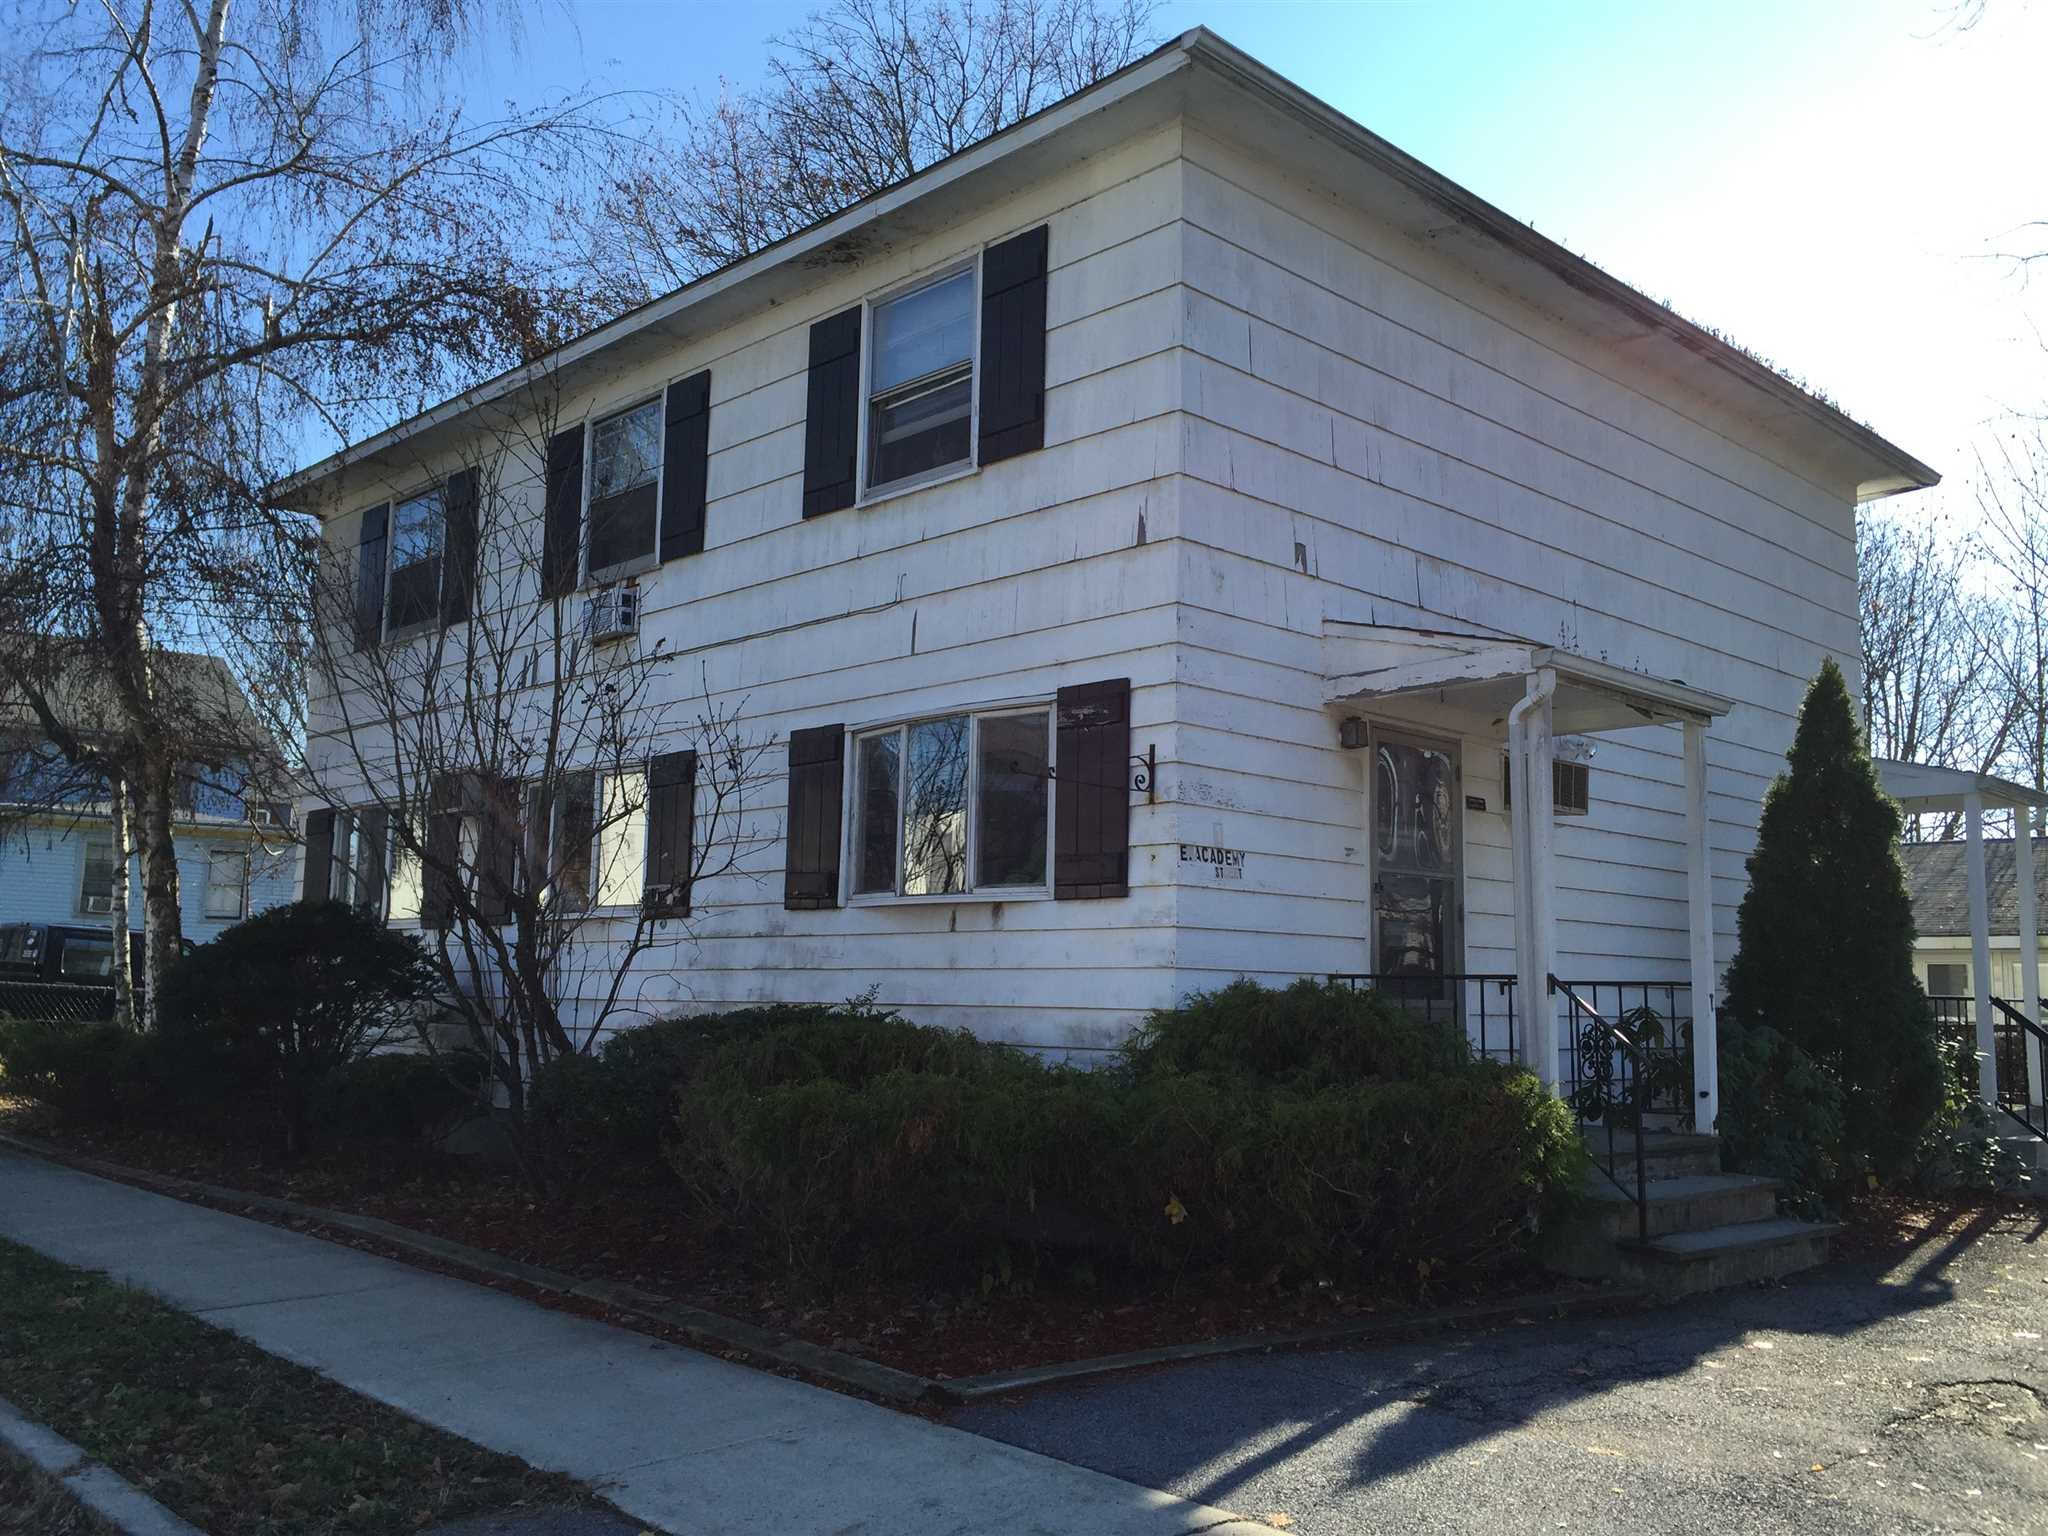 Single Family Home for Sale at 1 ACADEMY Street 1 ACADEMY Street Wappingers Falls, New York 12590 United States